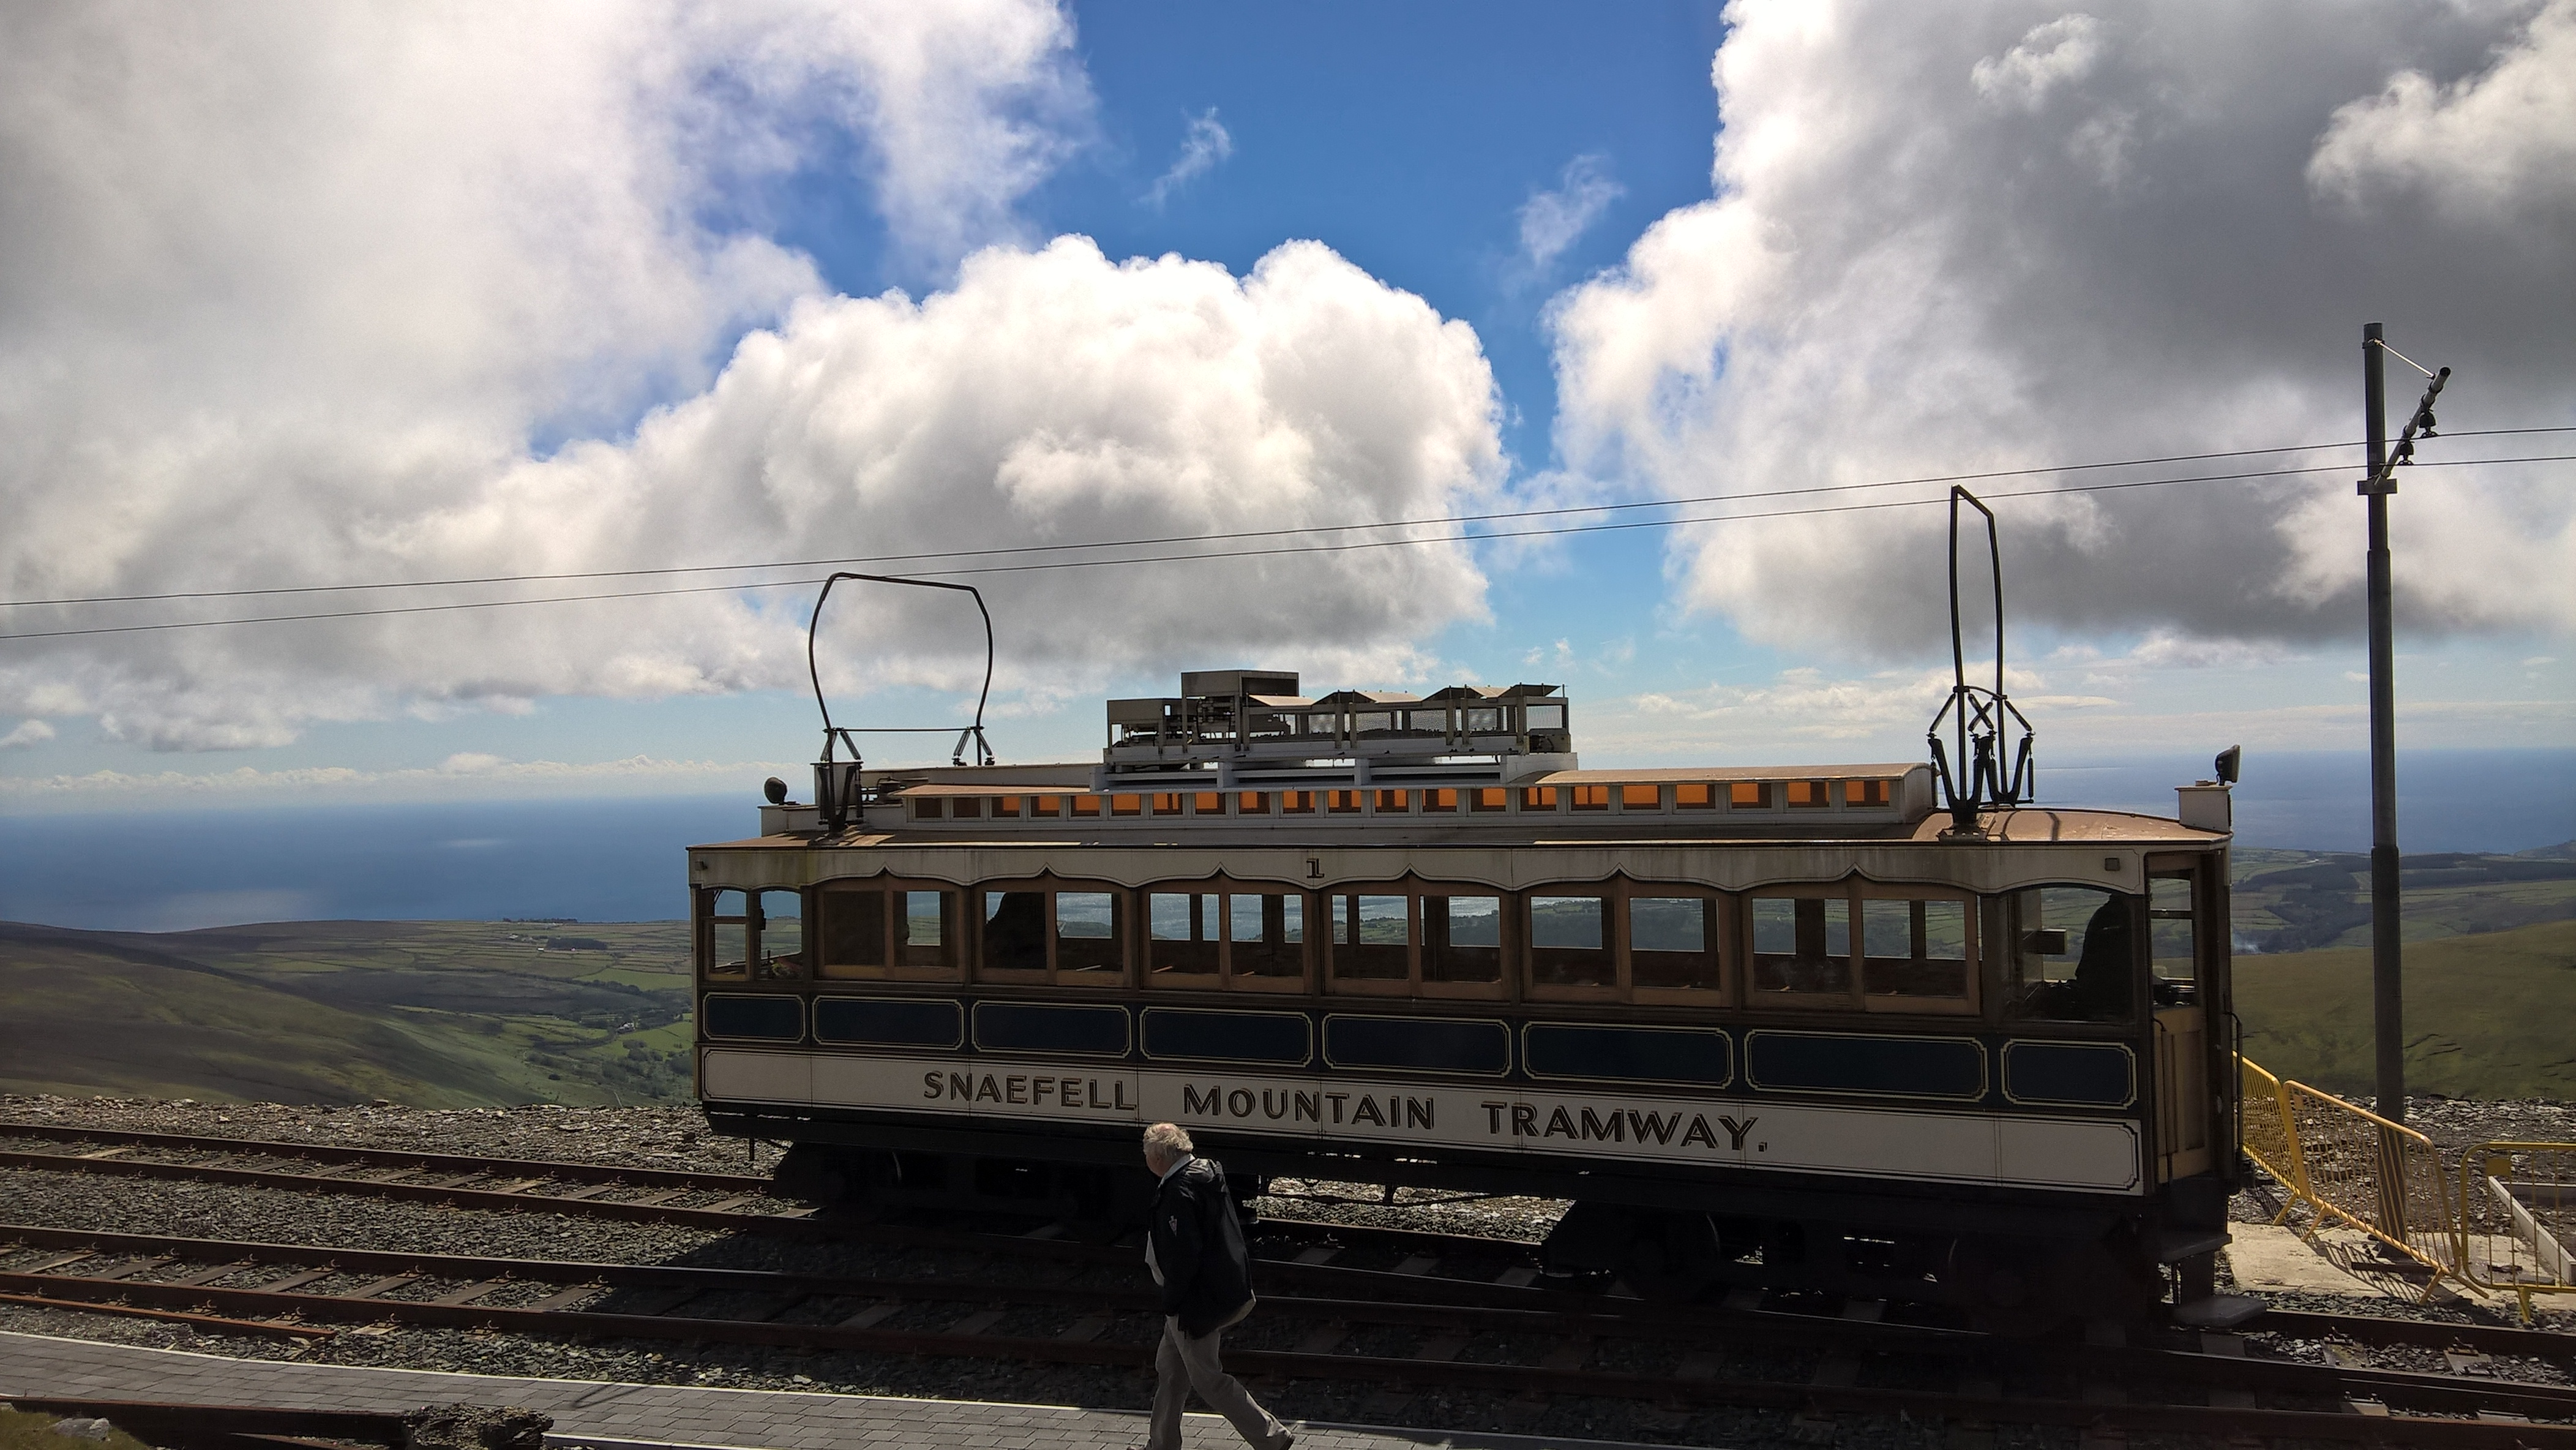 Snaefell Mountain Tram